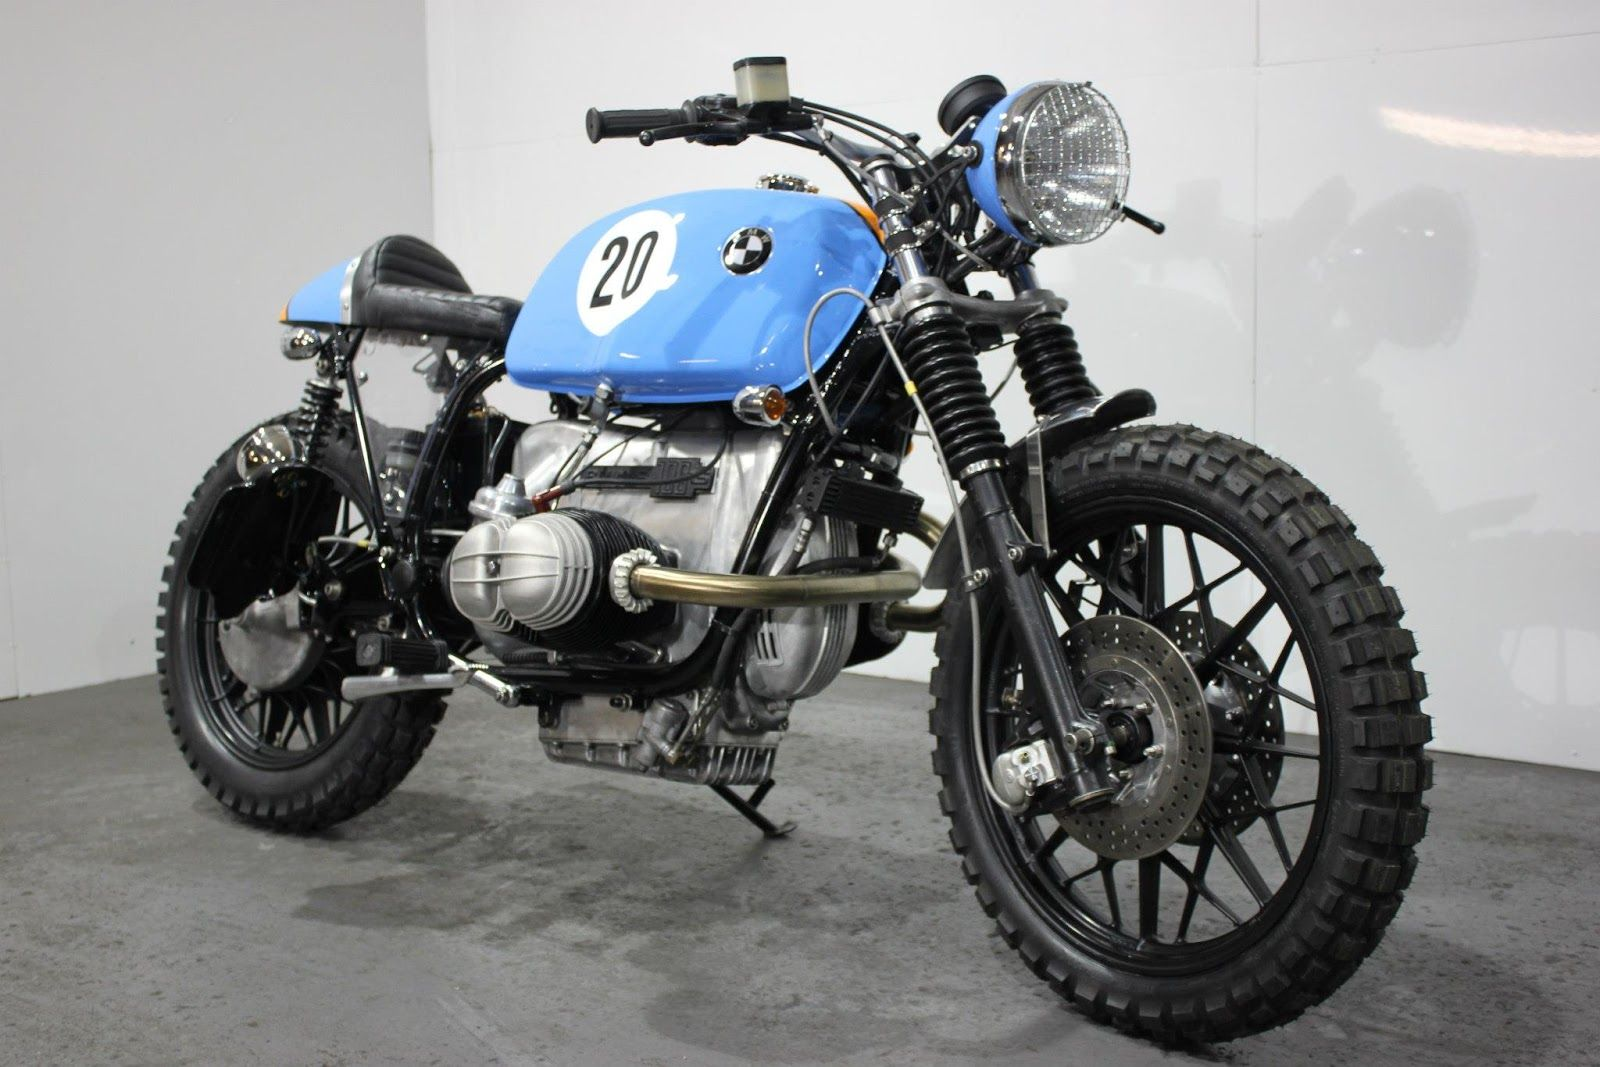 bmw r100 rs street scrambler le man by kevils speed. Black Bedroom Furniture Sets. Home Design Ideas